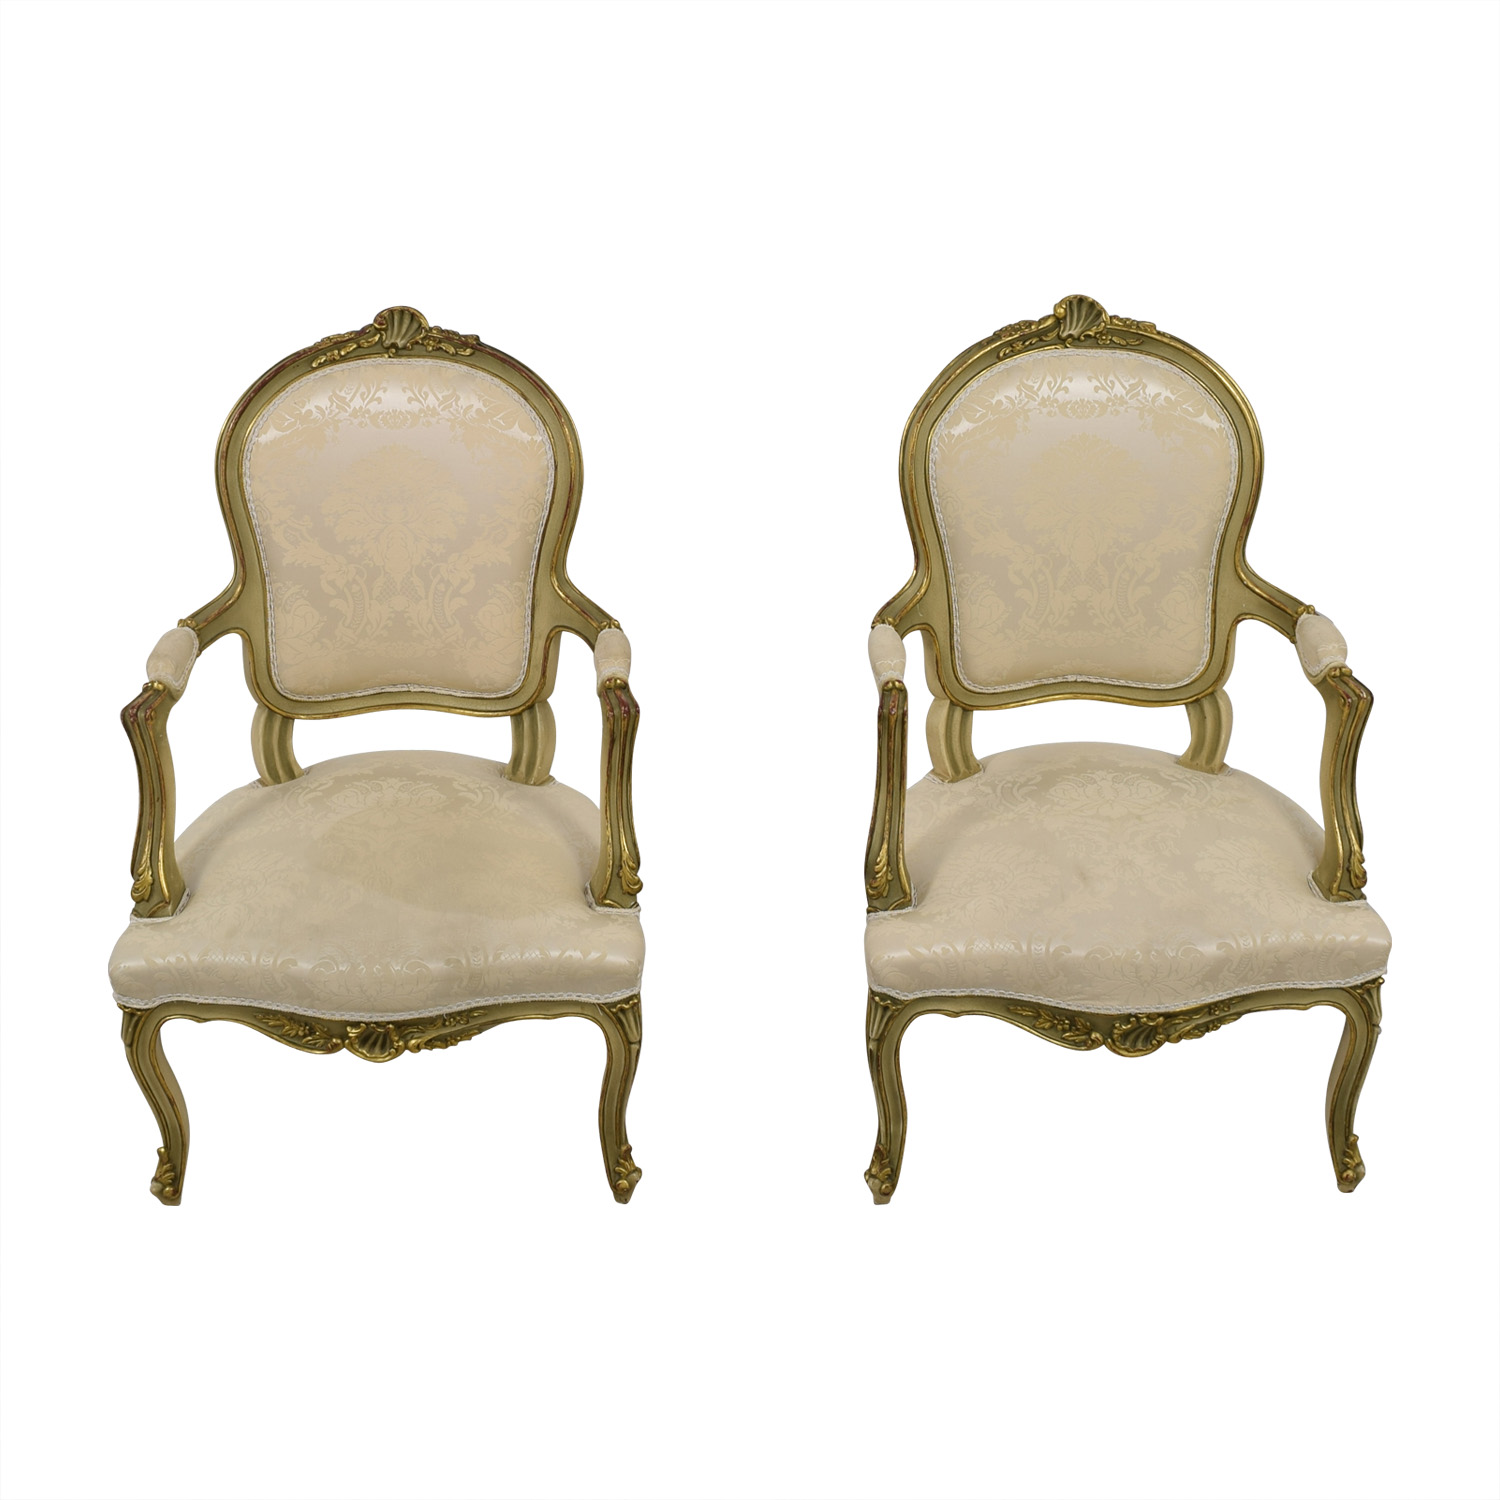 shop Antique White Jacquard Upholstered Gold Arm Chairs  Accent Chairs